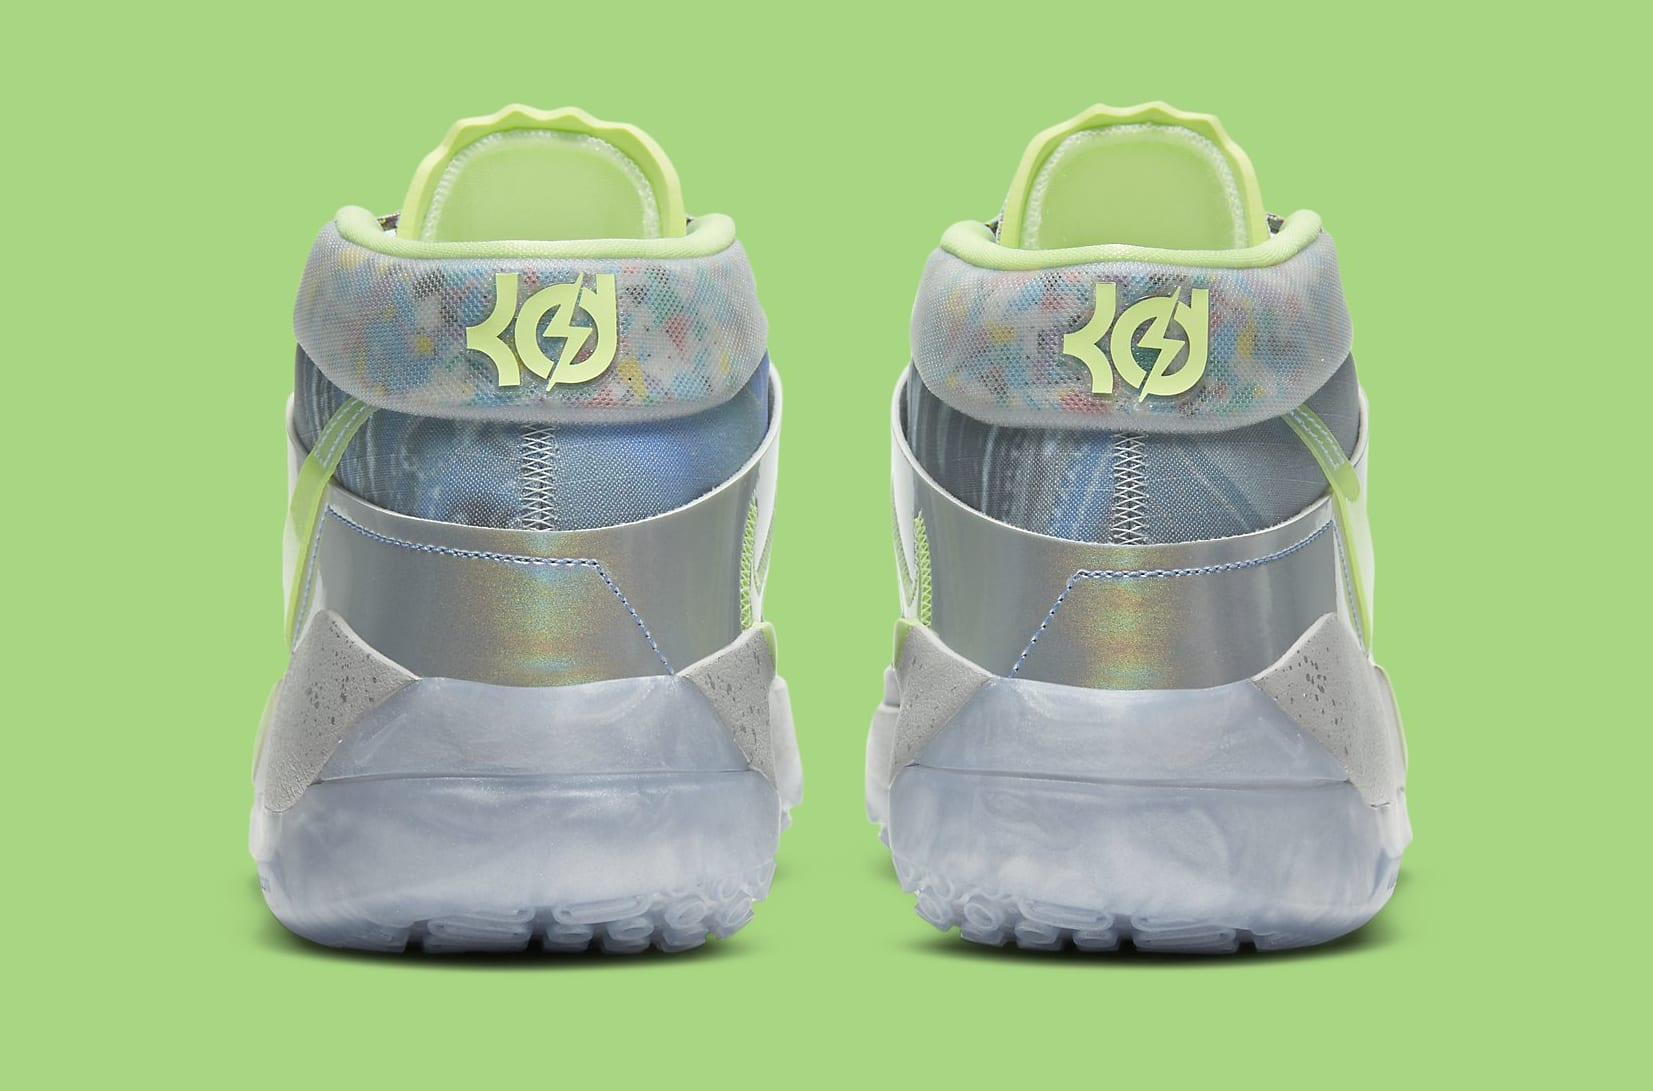 Nike KD 13 'All-Star' CW3159-001 Heel